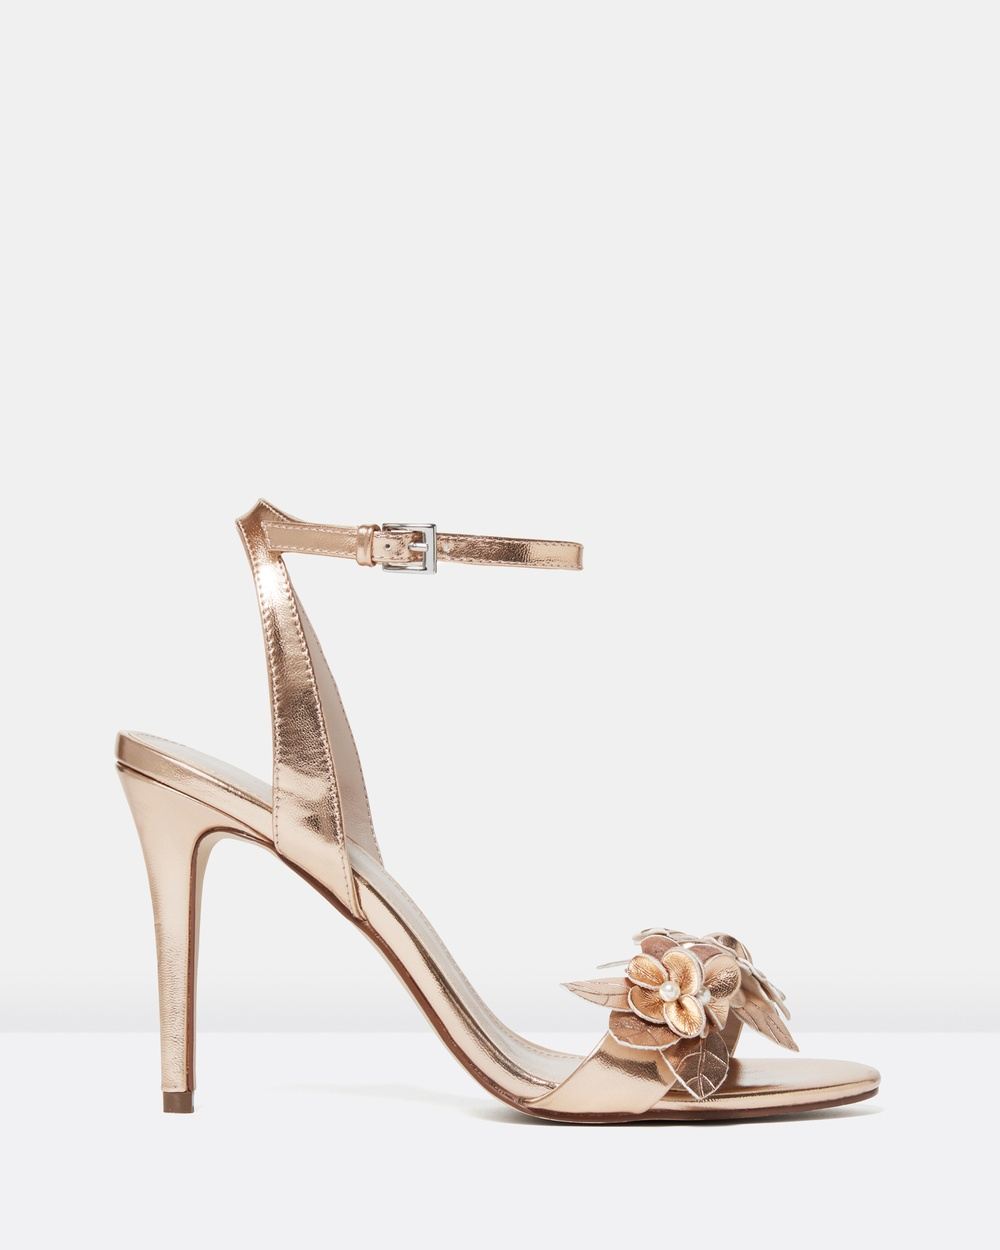 Forever New Jasmine Floral Vamp Stiletto Sandals Heels Rose Gold Jasmine Floral Vamp Stiletto Sandals